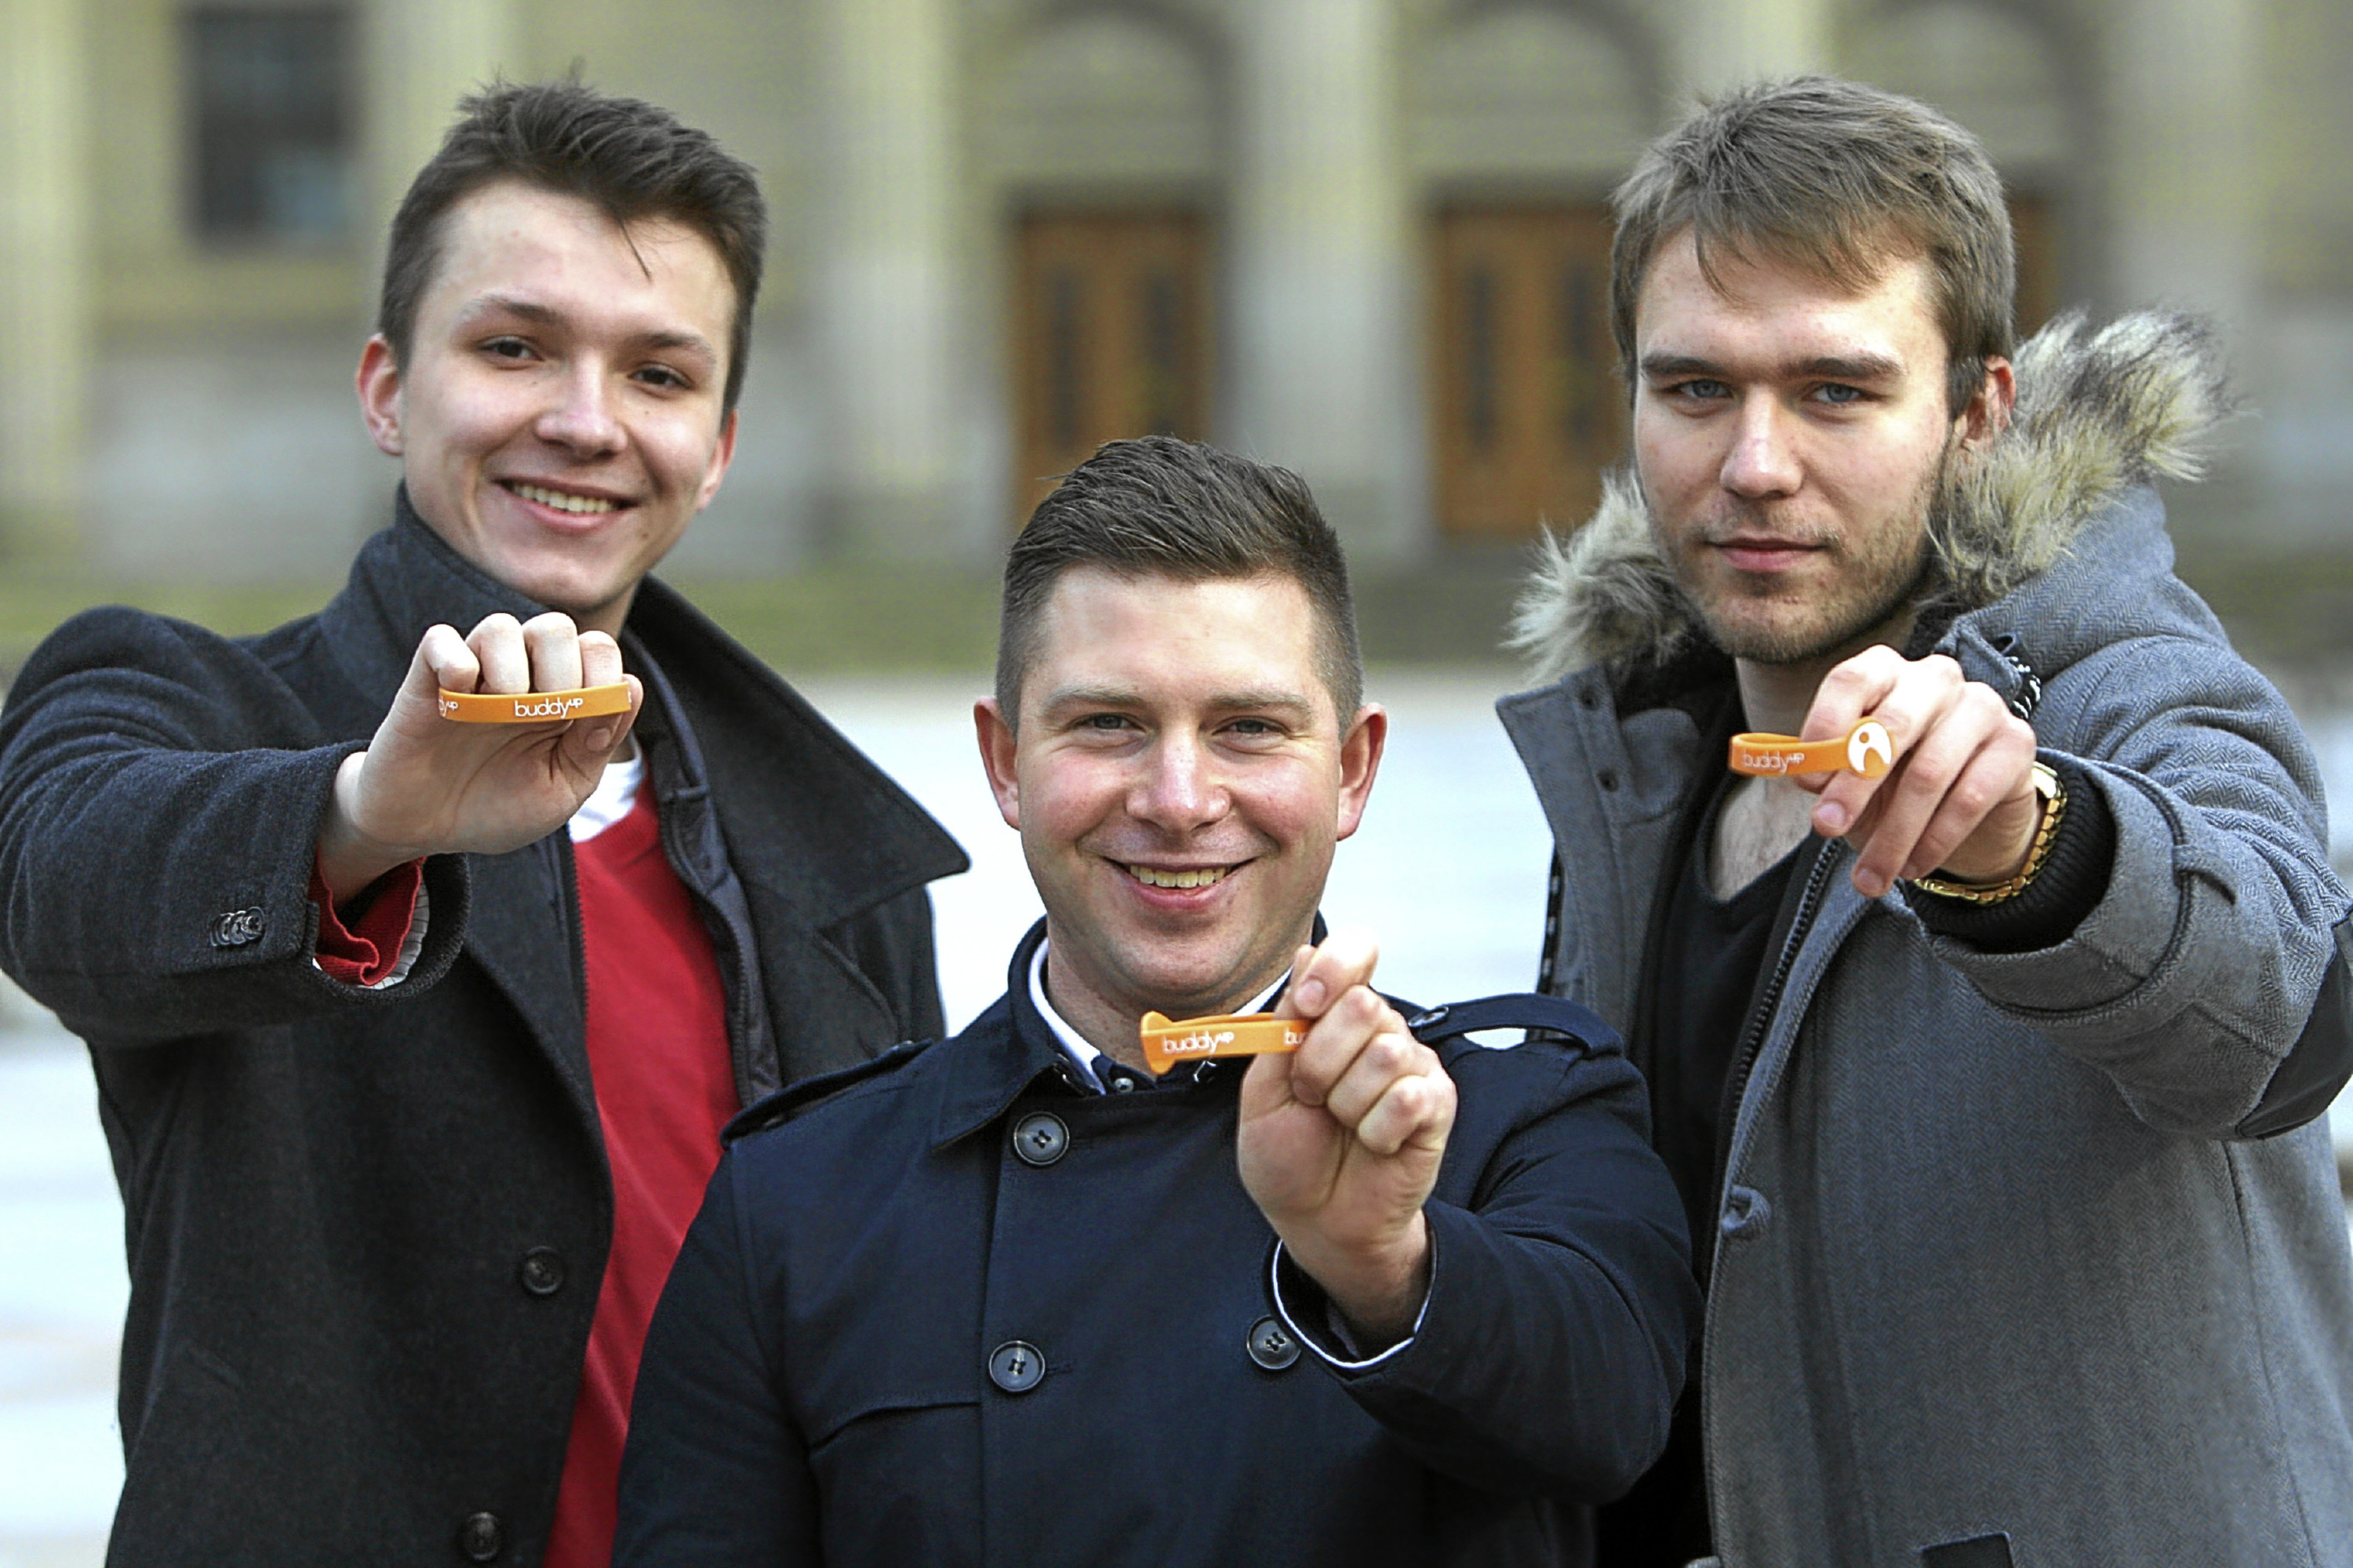 Kris Miller, Courier, 11/04/16. Picture today in Dundee shows University of Dundee students, Filip Kajetan Makara, Vladimir Zabnin and Pawel Lysik who have big plans for a fitness themed app. The trio are crowfunding and hoping to raise £10,000 to get 'Buddy Up' off the ground. Pic shows the students with awards they won for the idea.